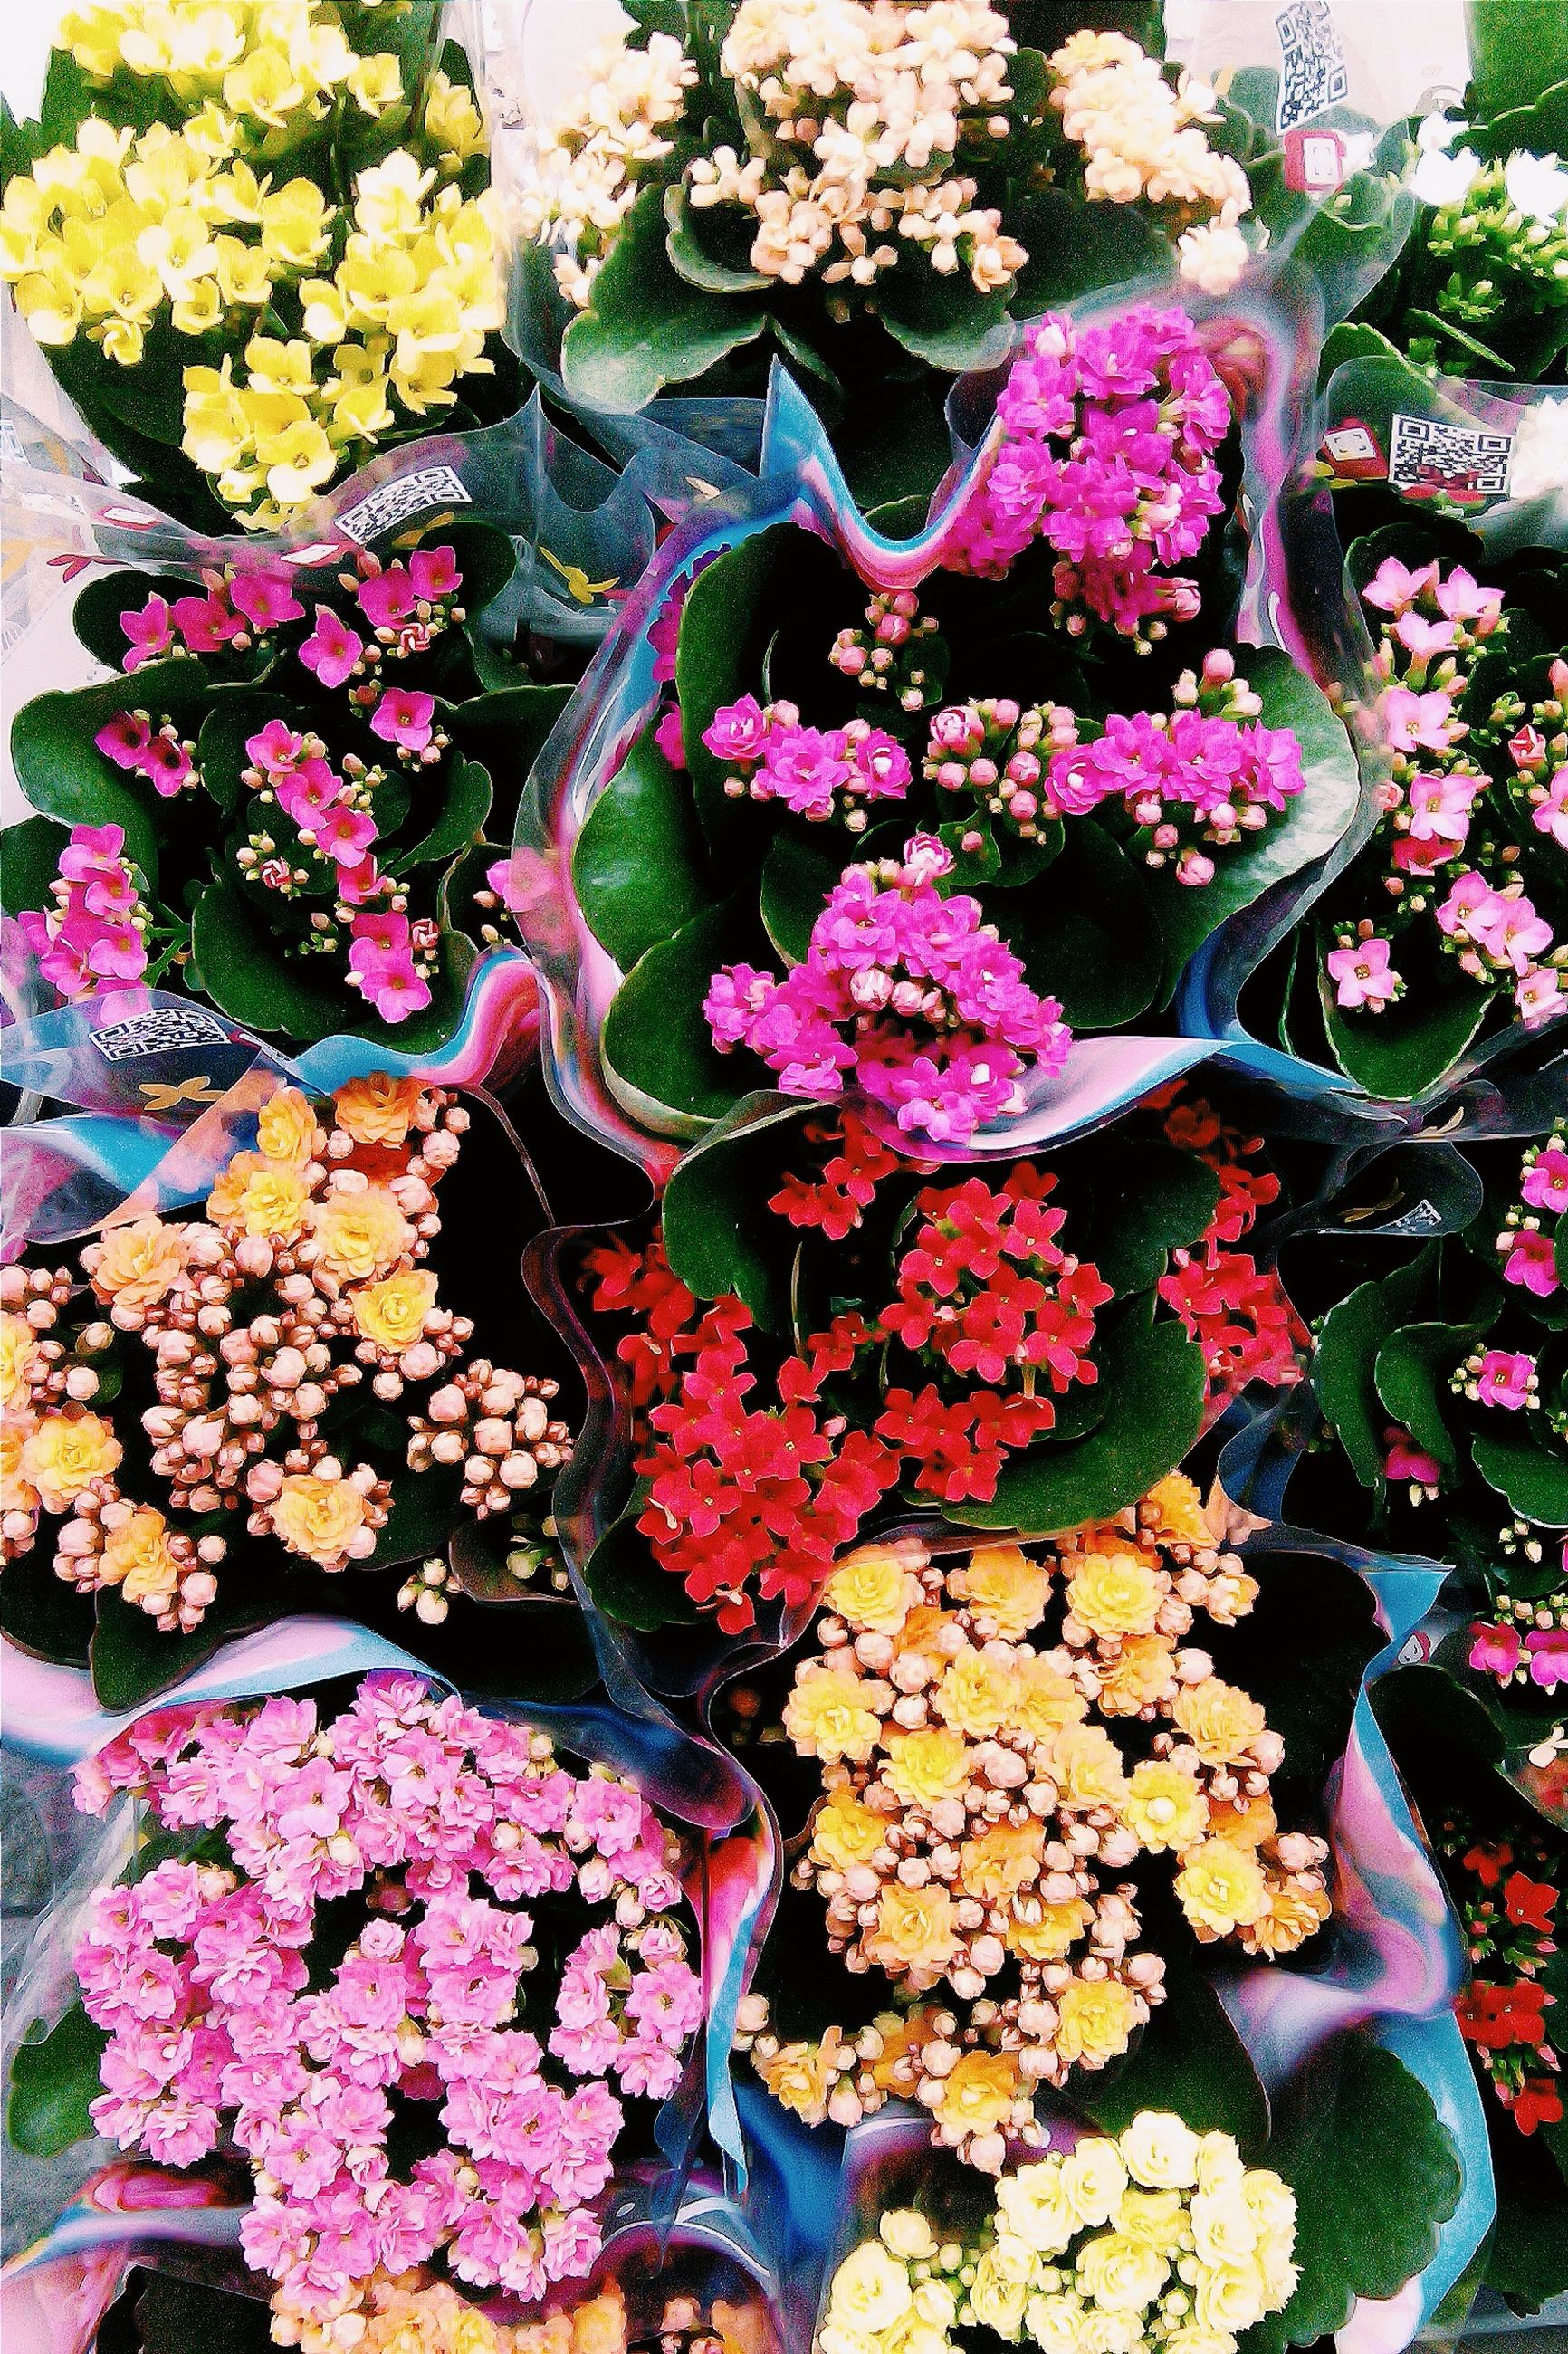 flower, freshness, fragility, petal, beauty in nature, growth, high angle view, pink color, blooming, multi colored, flower head, plant, nature, in bloom, abundance, blossom, bouquet, bunch of flowers, springtime, leaf